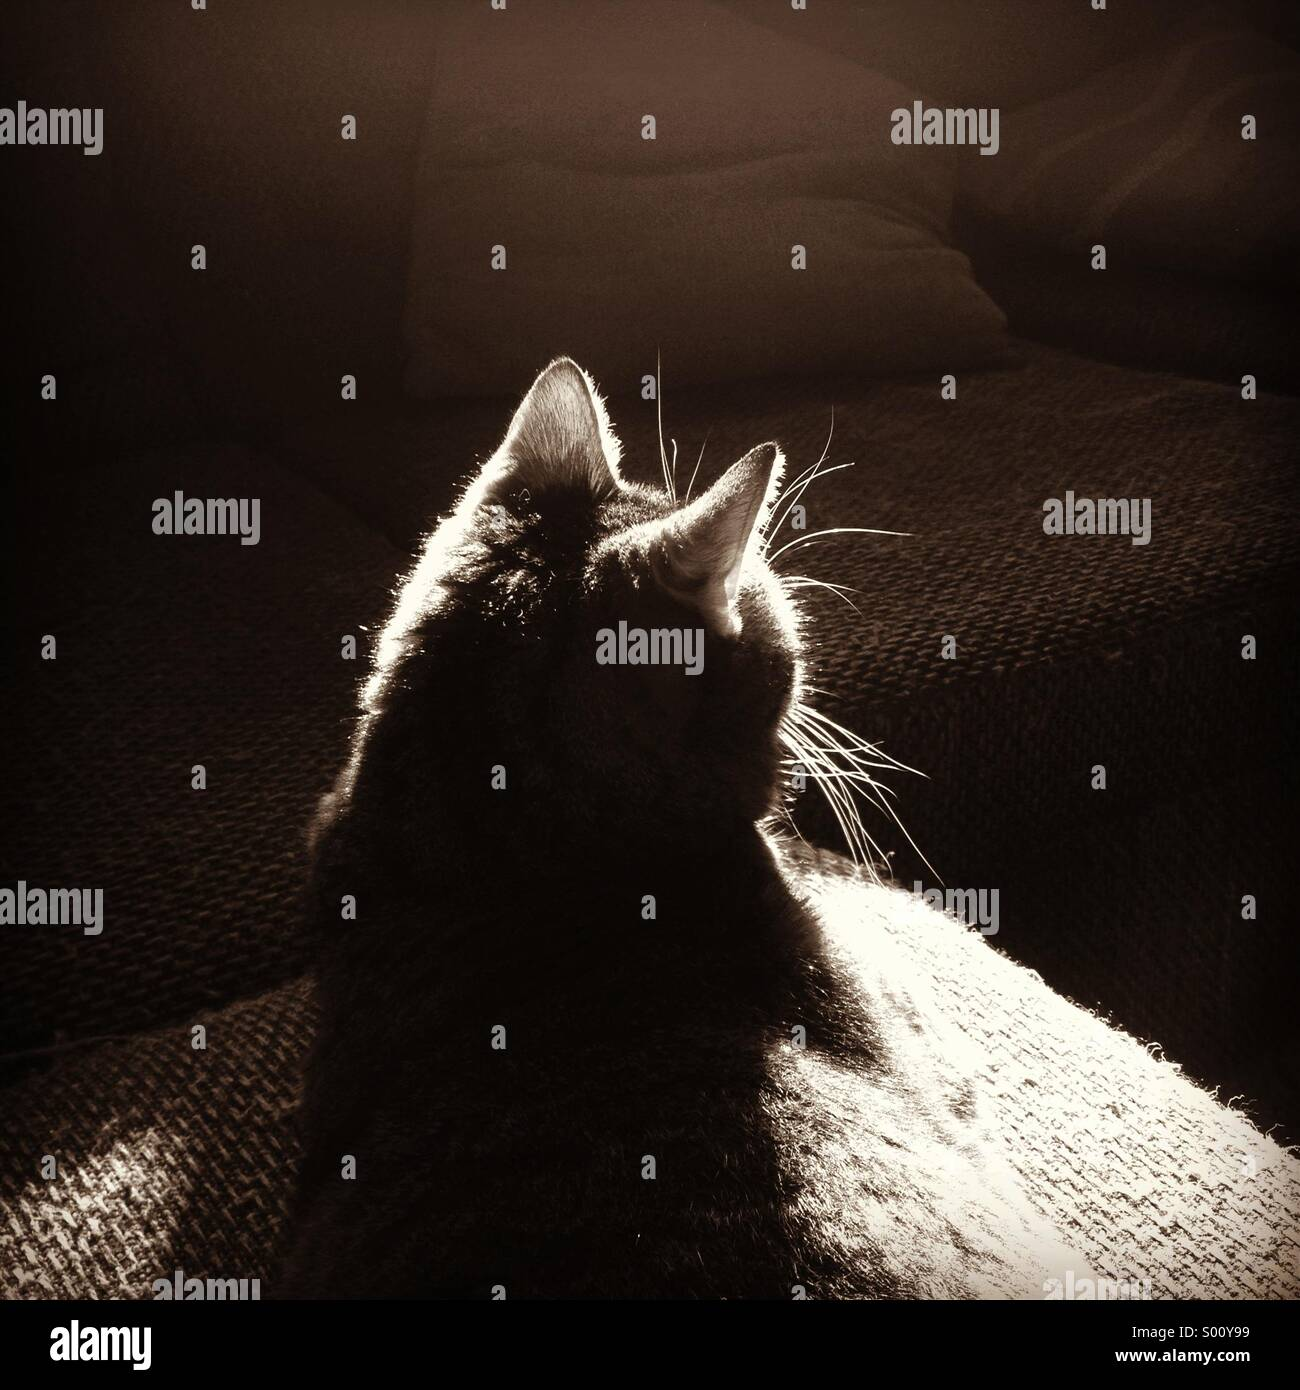 Cat in afternoon sunlight - Stock Image